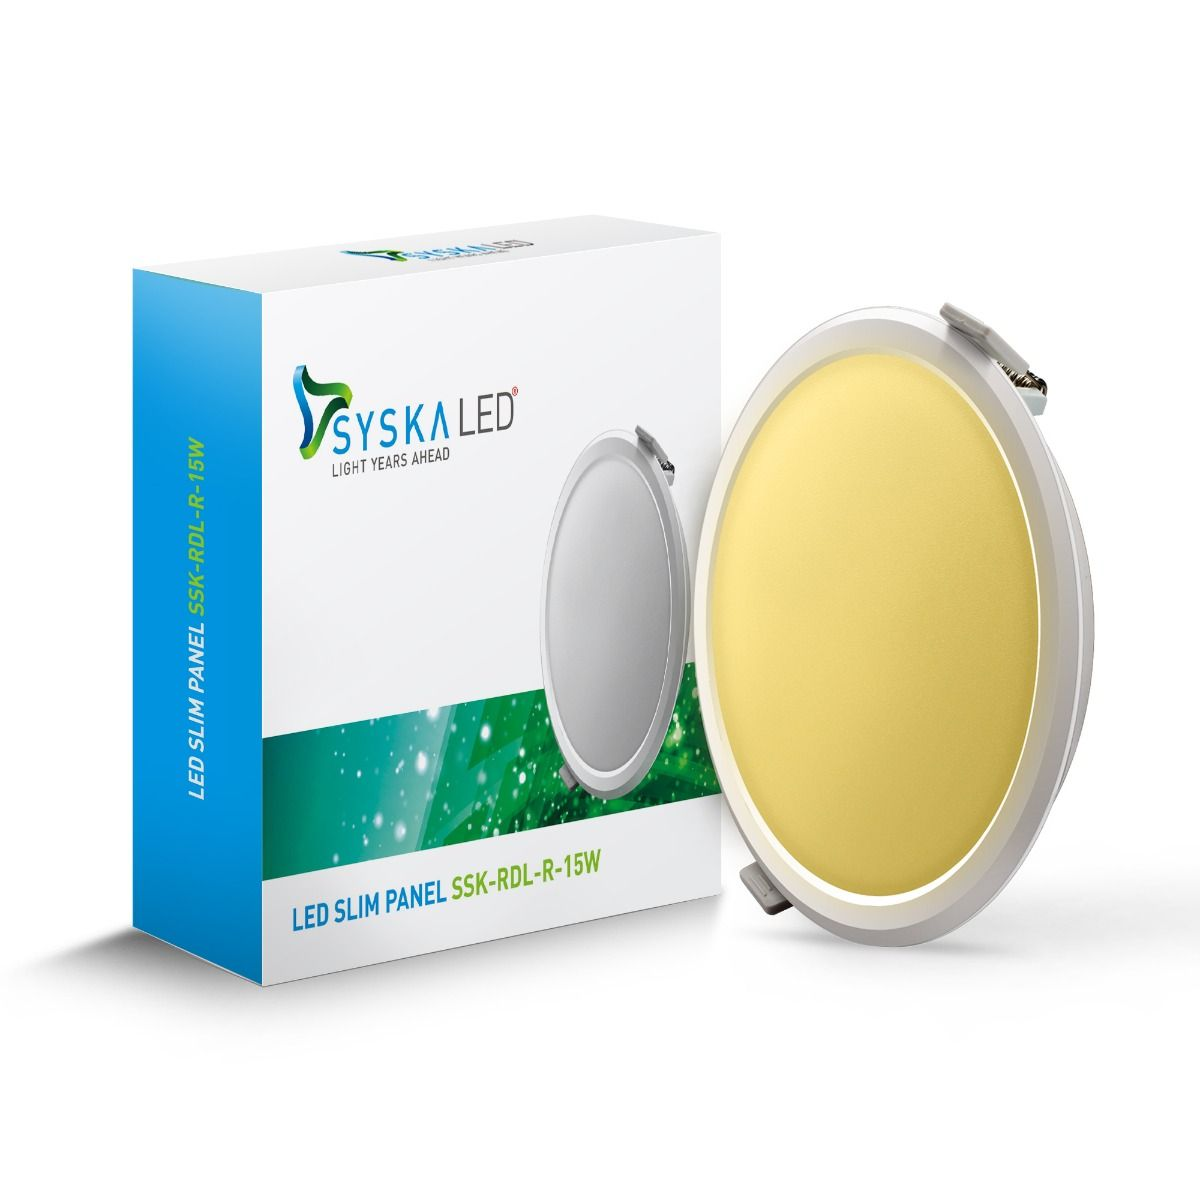 Syska RDL Round LED Slim Downlight-15W-3000K (yellow)